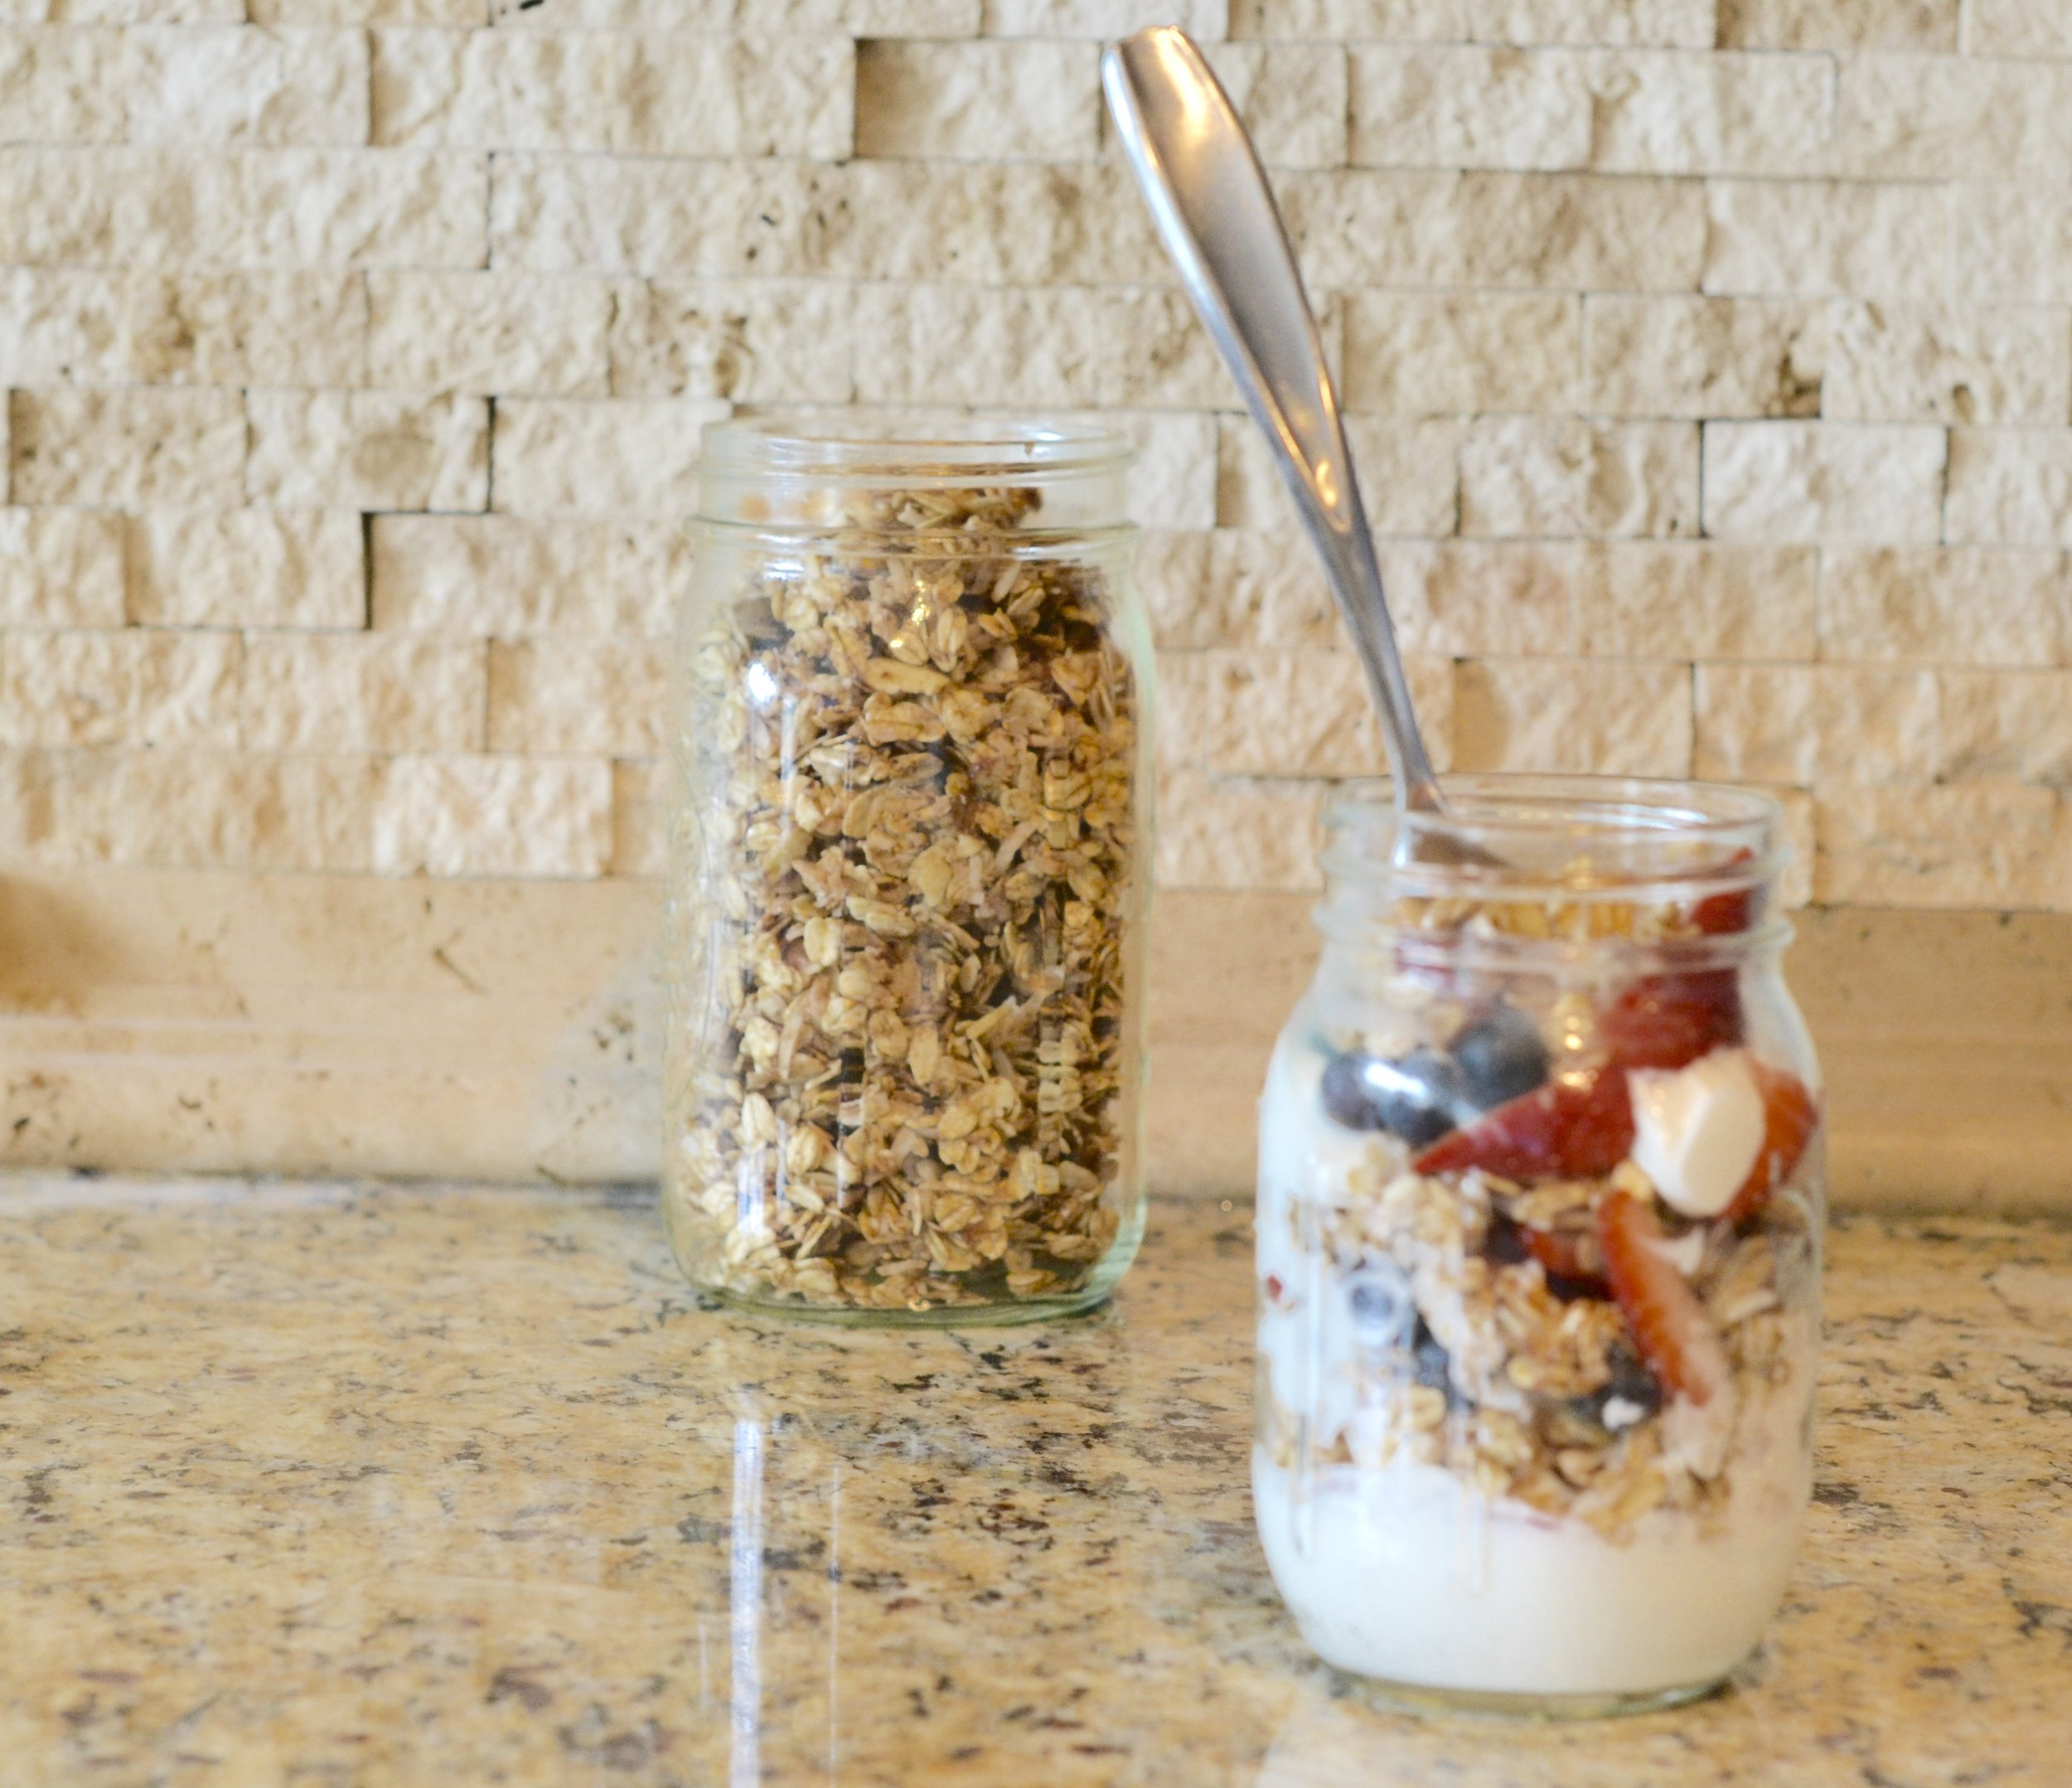 homemade granola and yogurt jars.